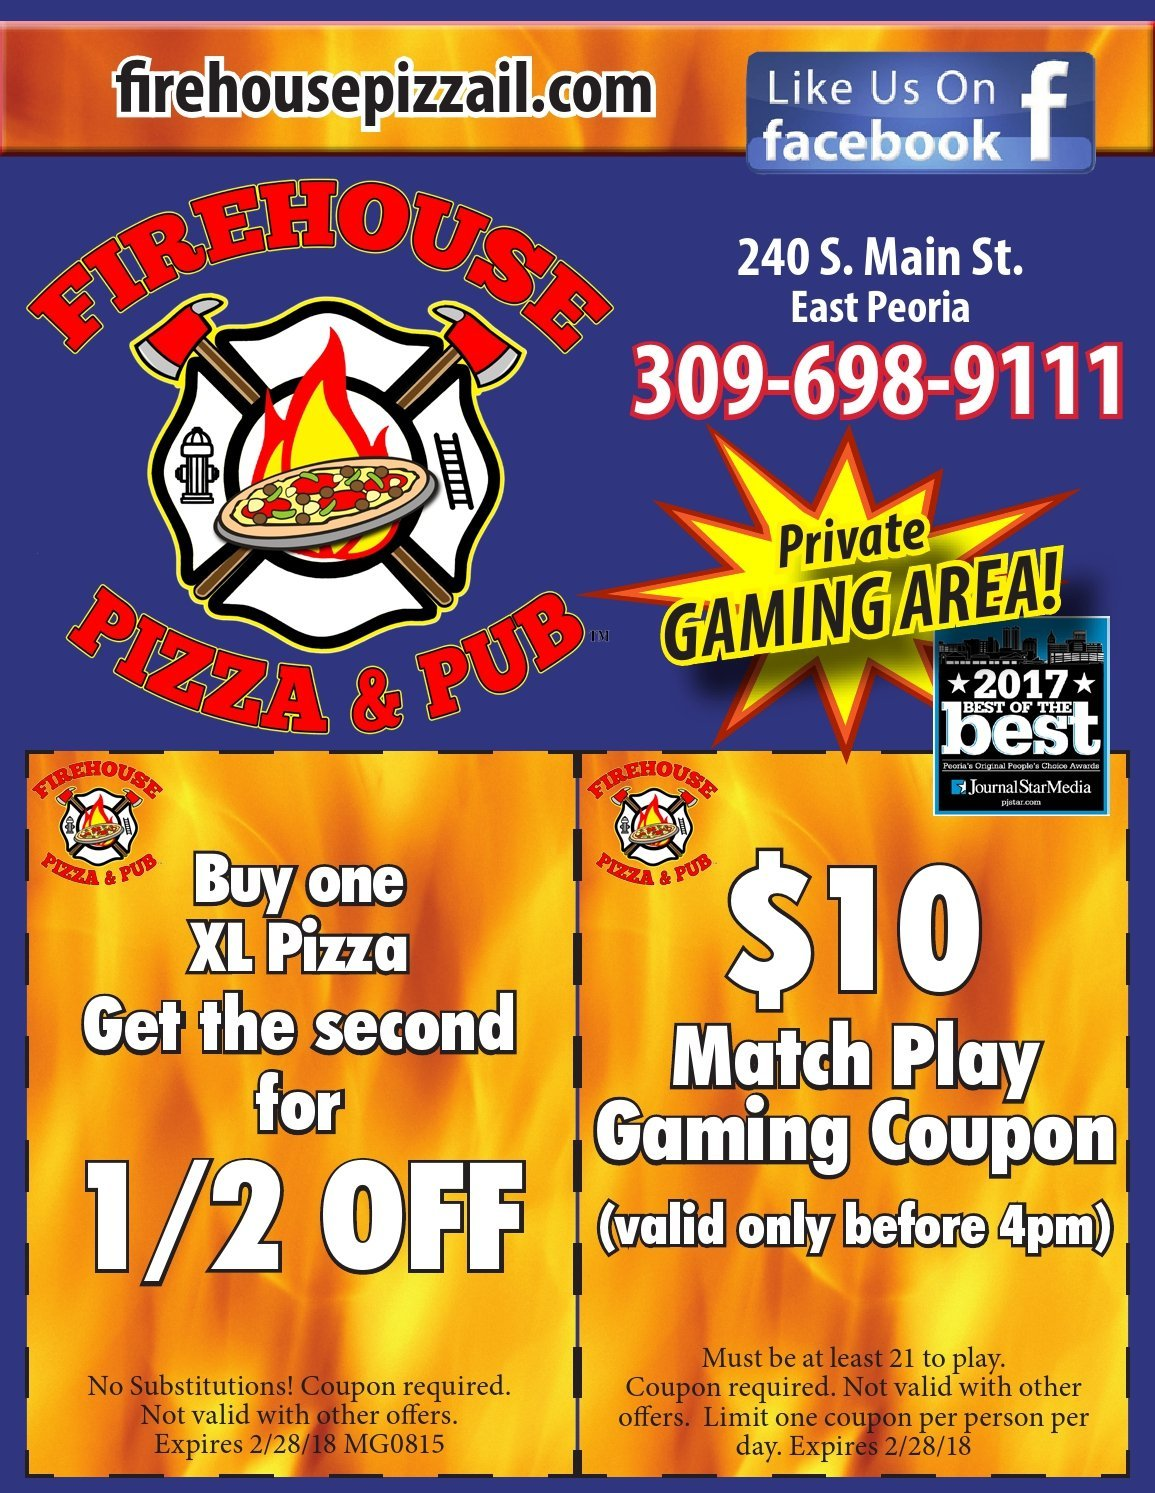 Firehouse Pizza and Pub coupons and $10 match play East Peoria, IL